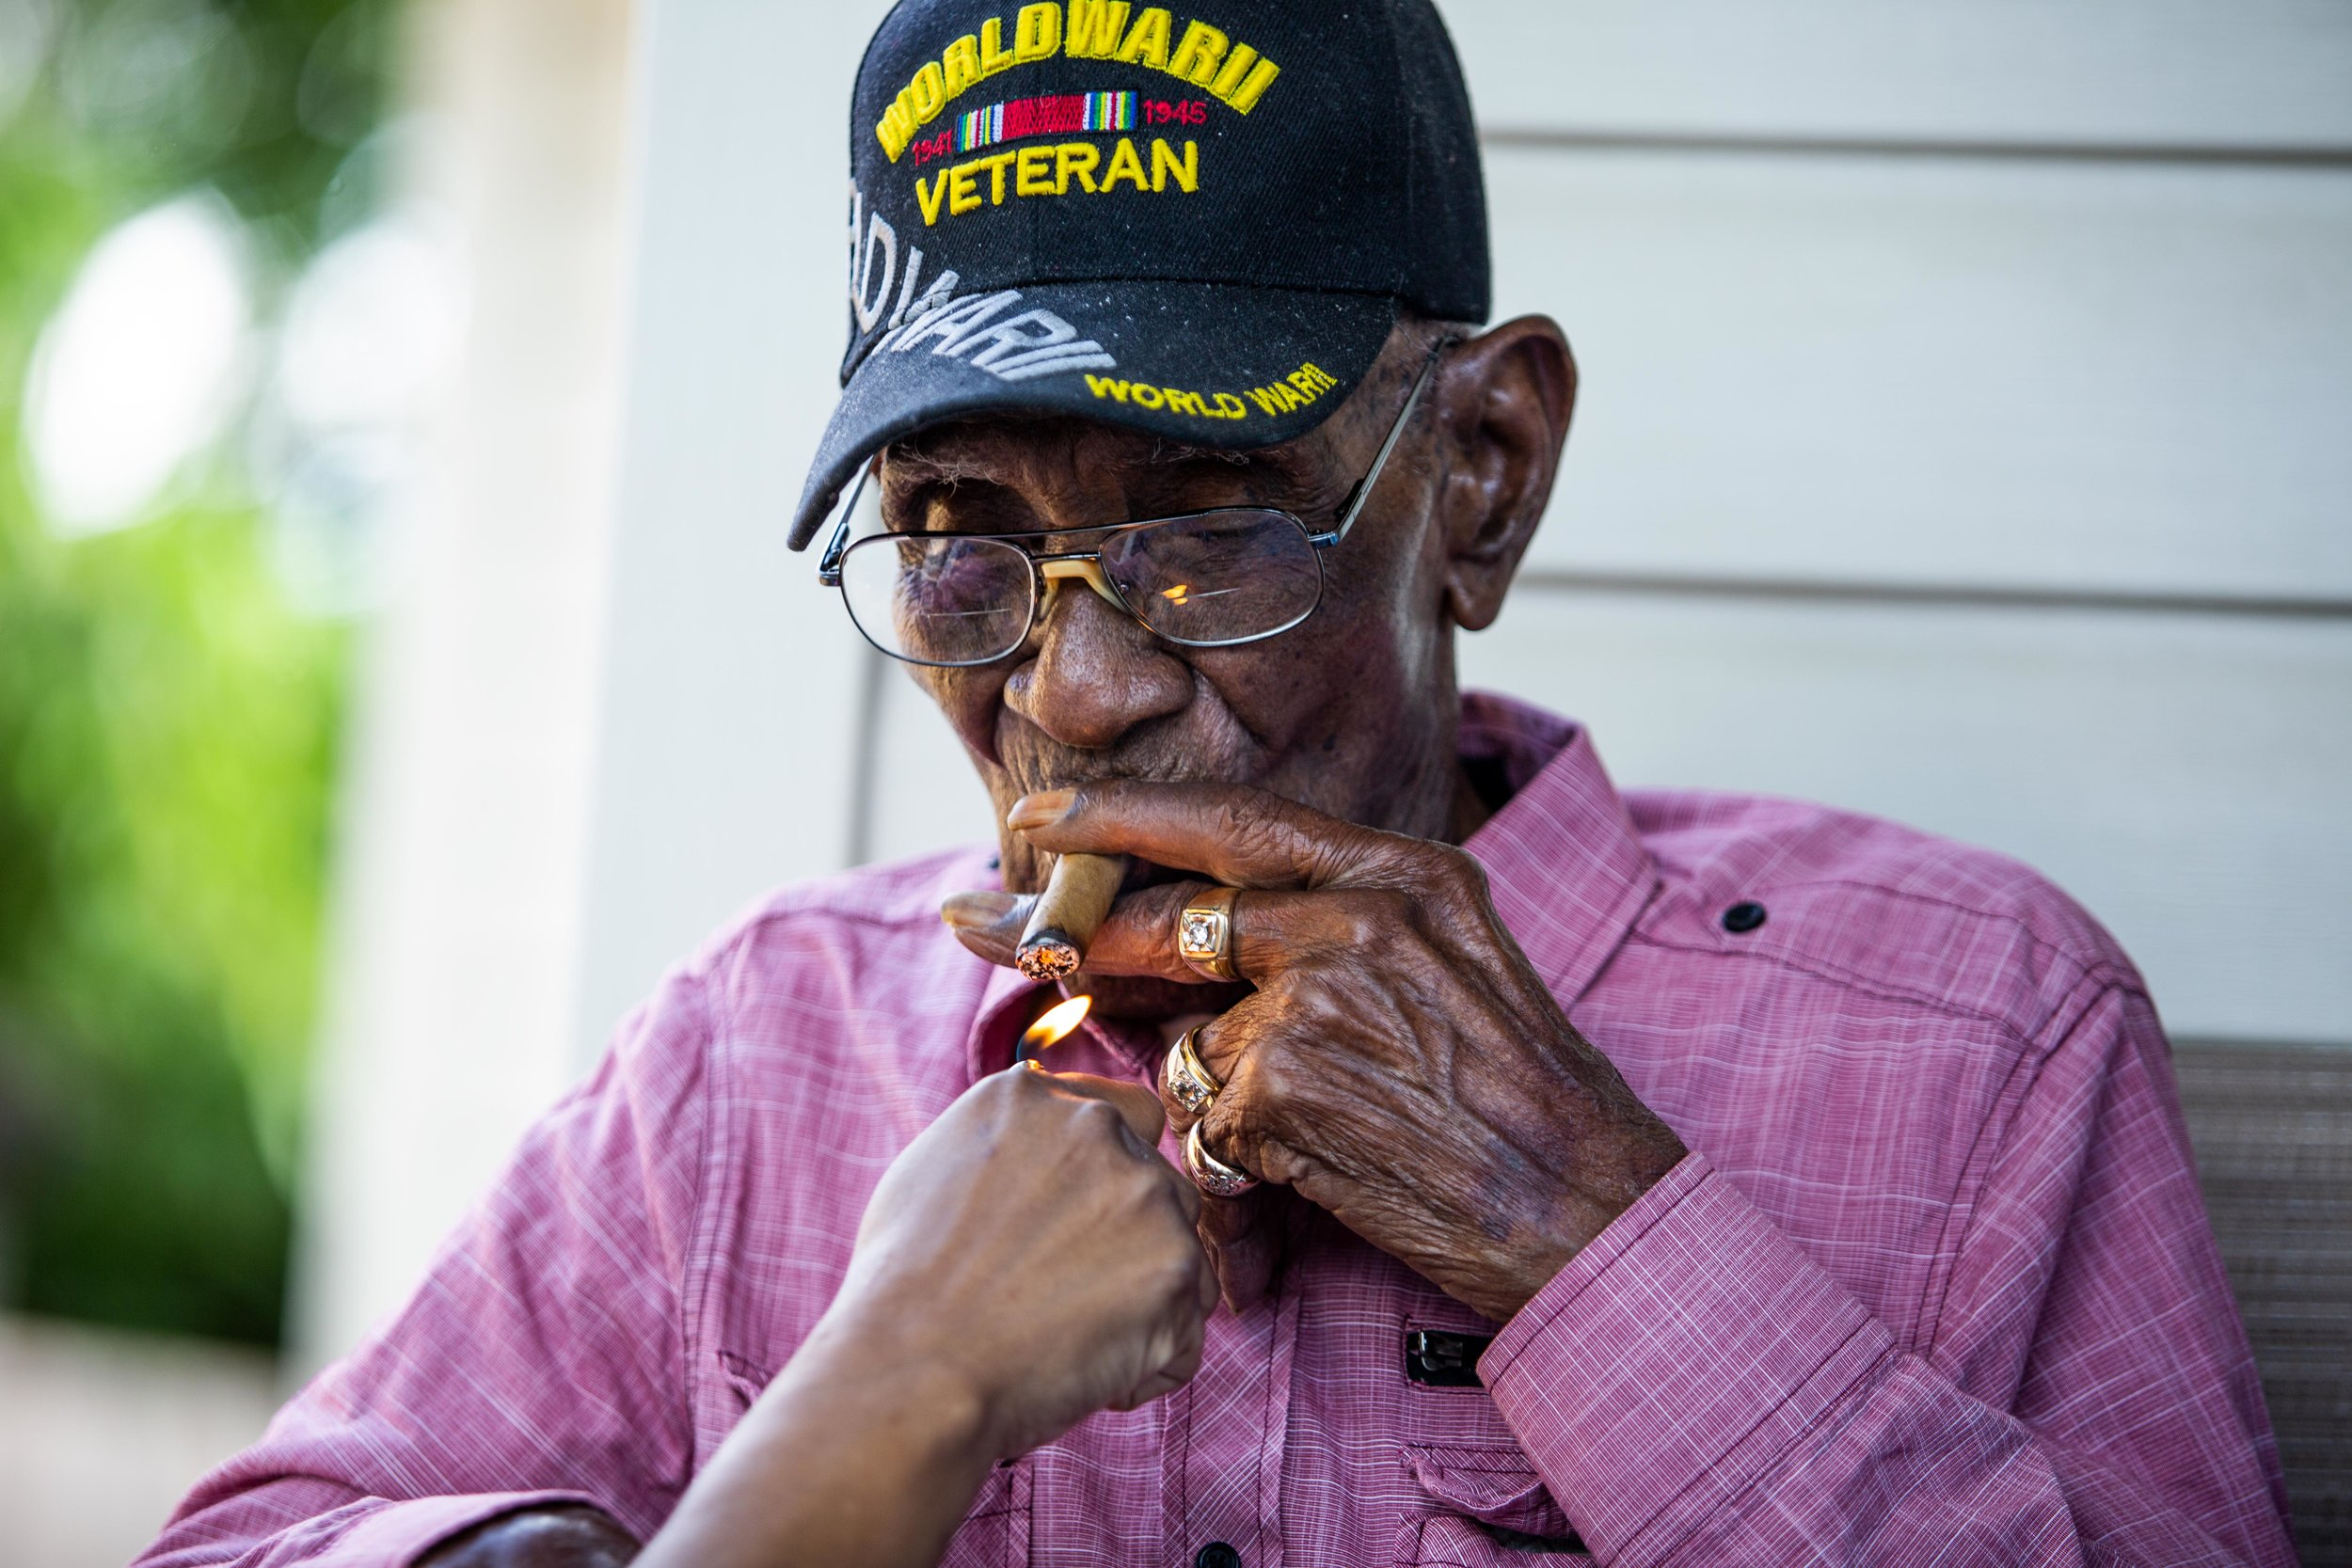 AUSTIN, TEXAS. May 11, 2018. Richard Overton, America's oldest living WWII veteran, lights a cigar on the front porch of his East Austin home during a public party celebrating his 112th birthday.Montinique Monroe for KUT News